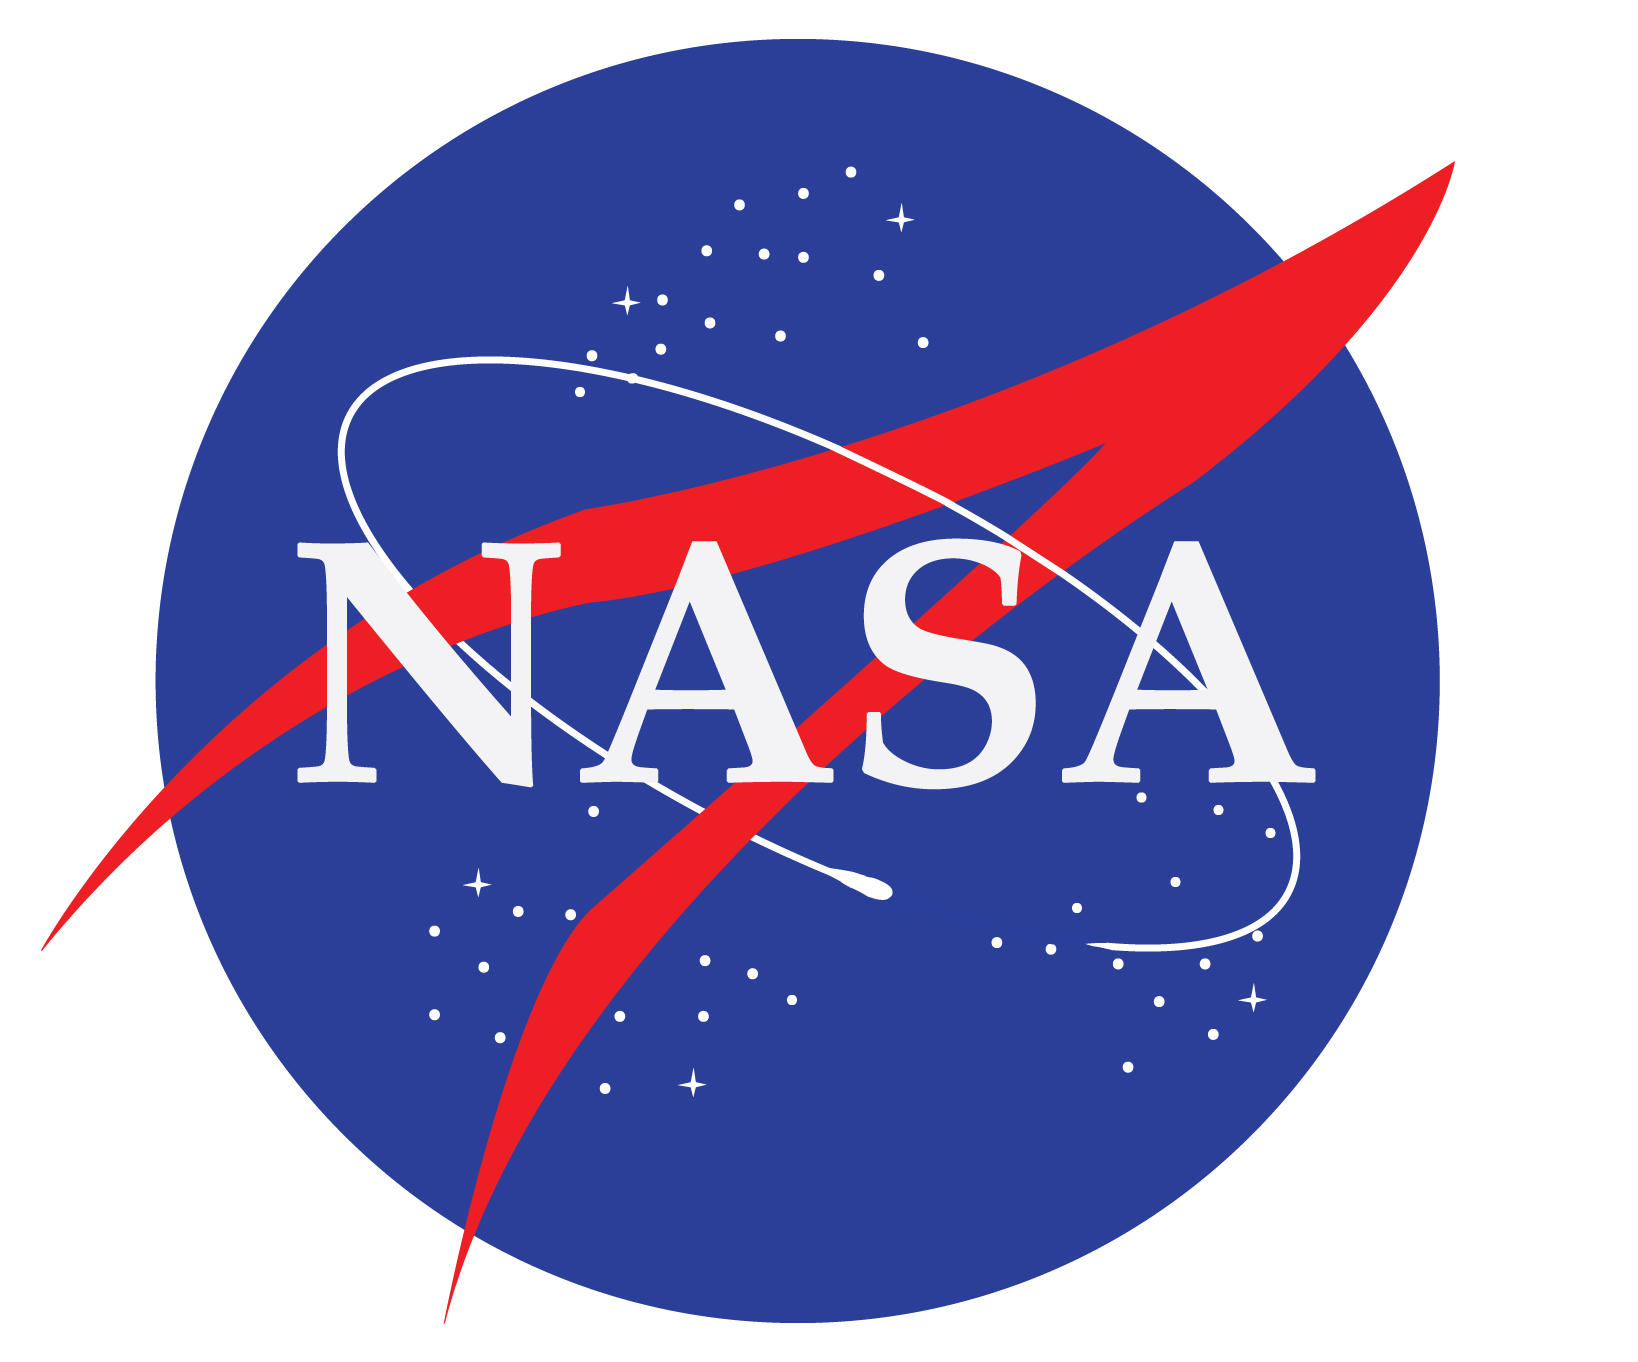 http://www.nasa.gov/centers/glenn/education/index.html#.U9p7LIBkFy8